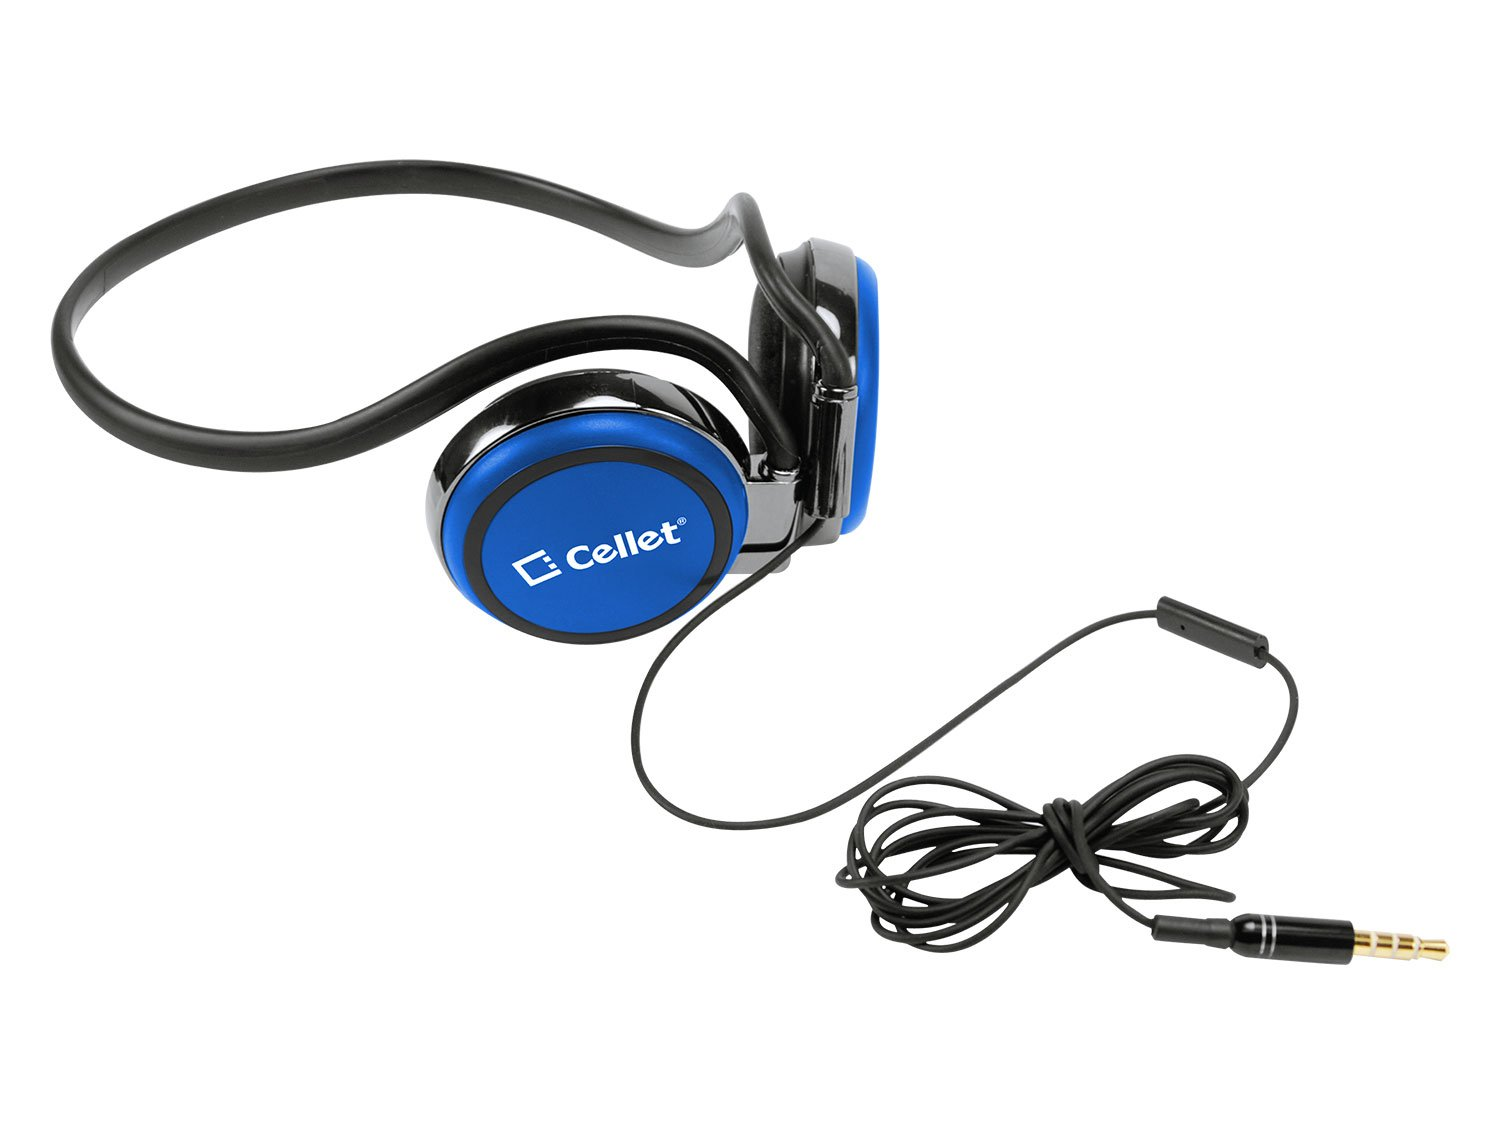 Amazon. Com: cellet 3. 5mm stereo sports hands-free headset with.